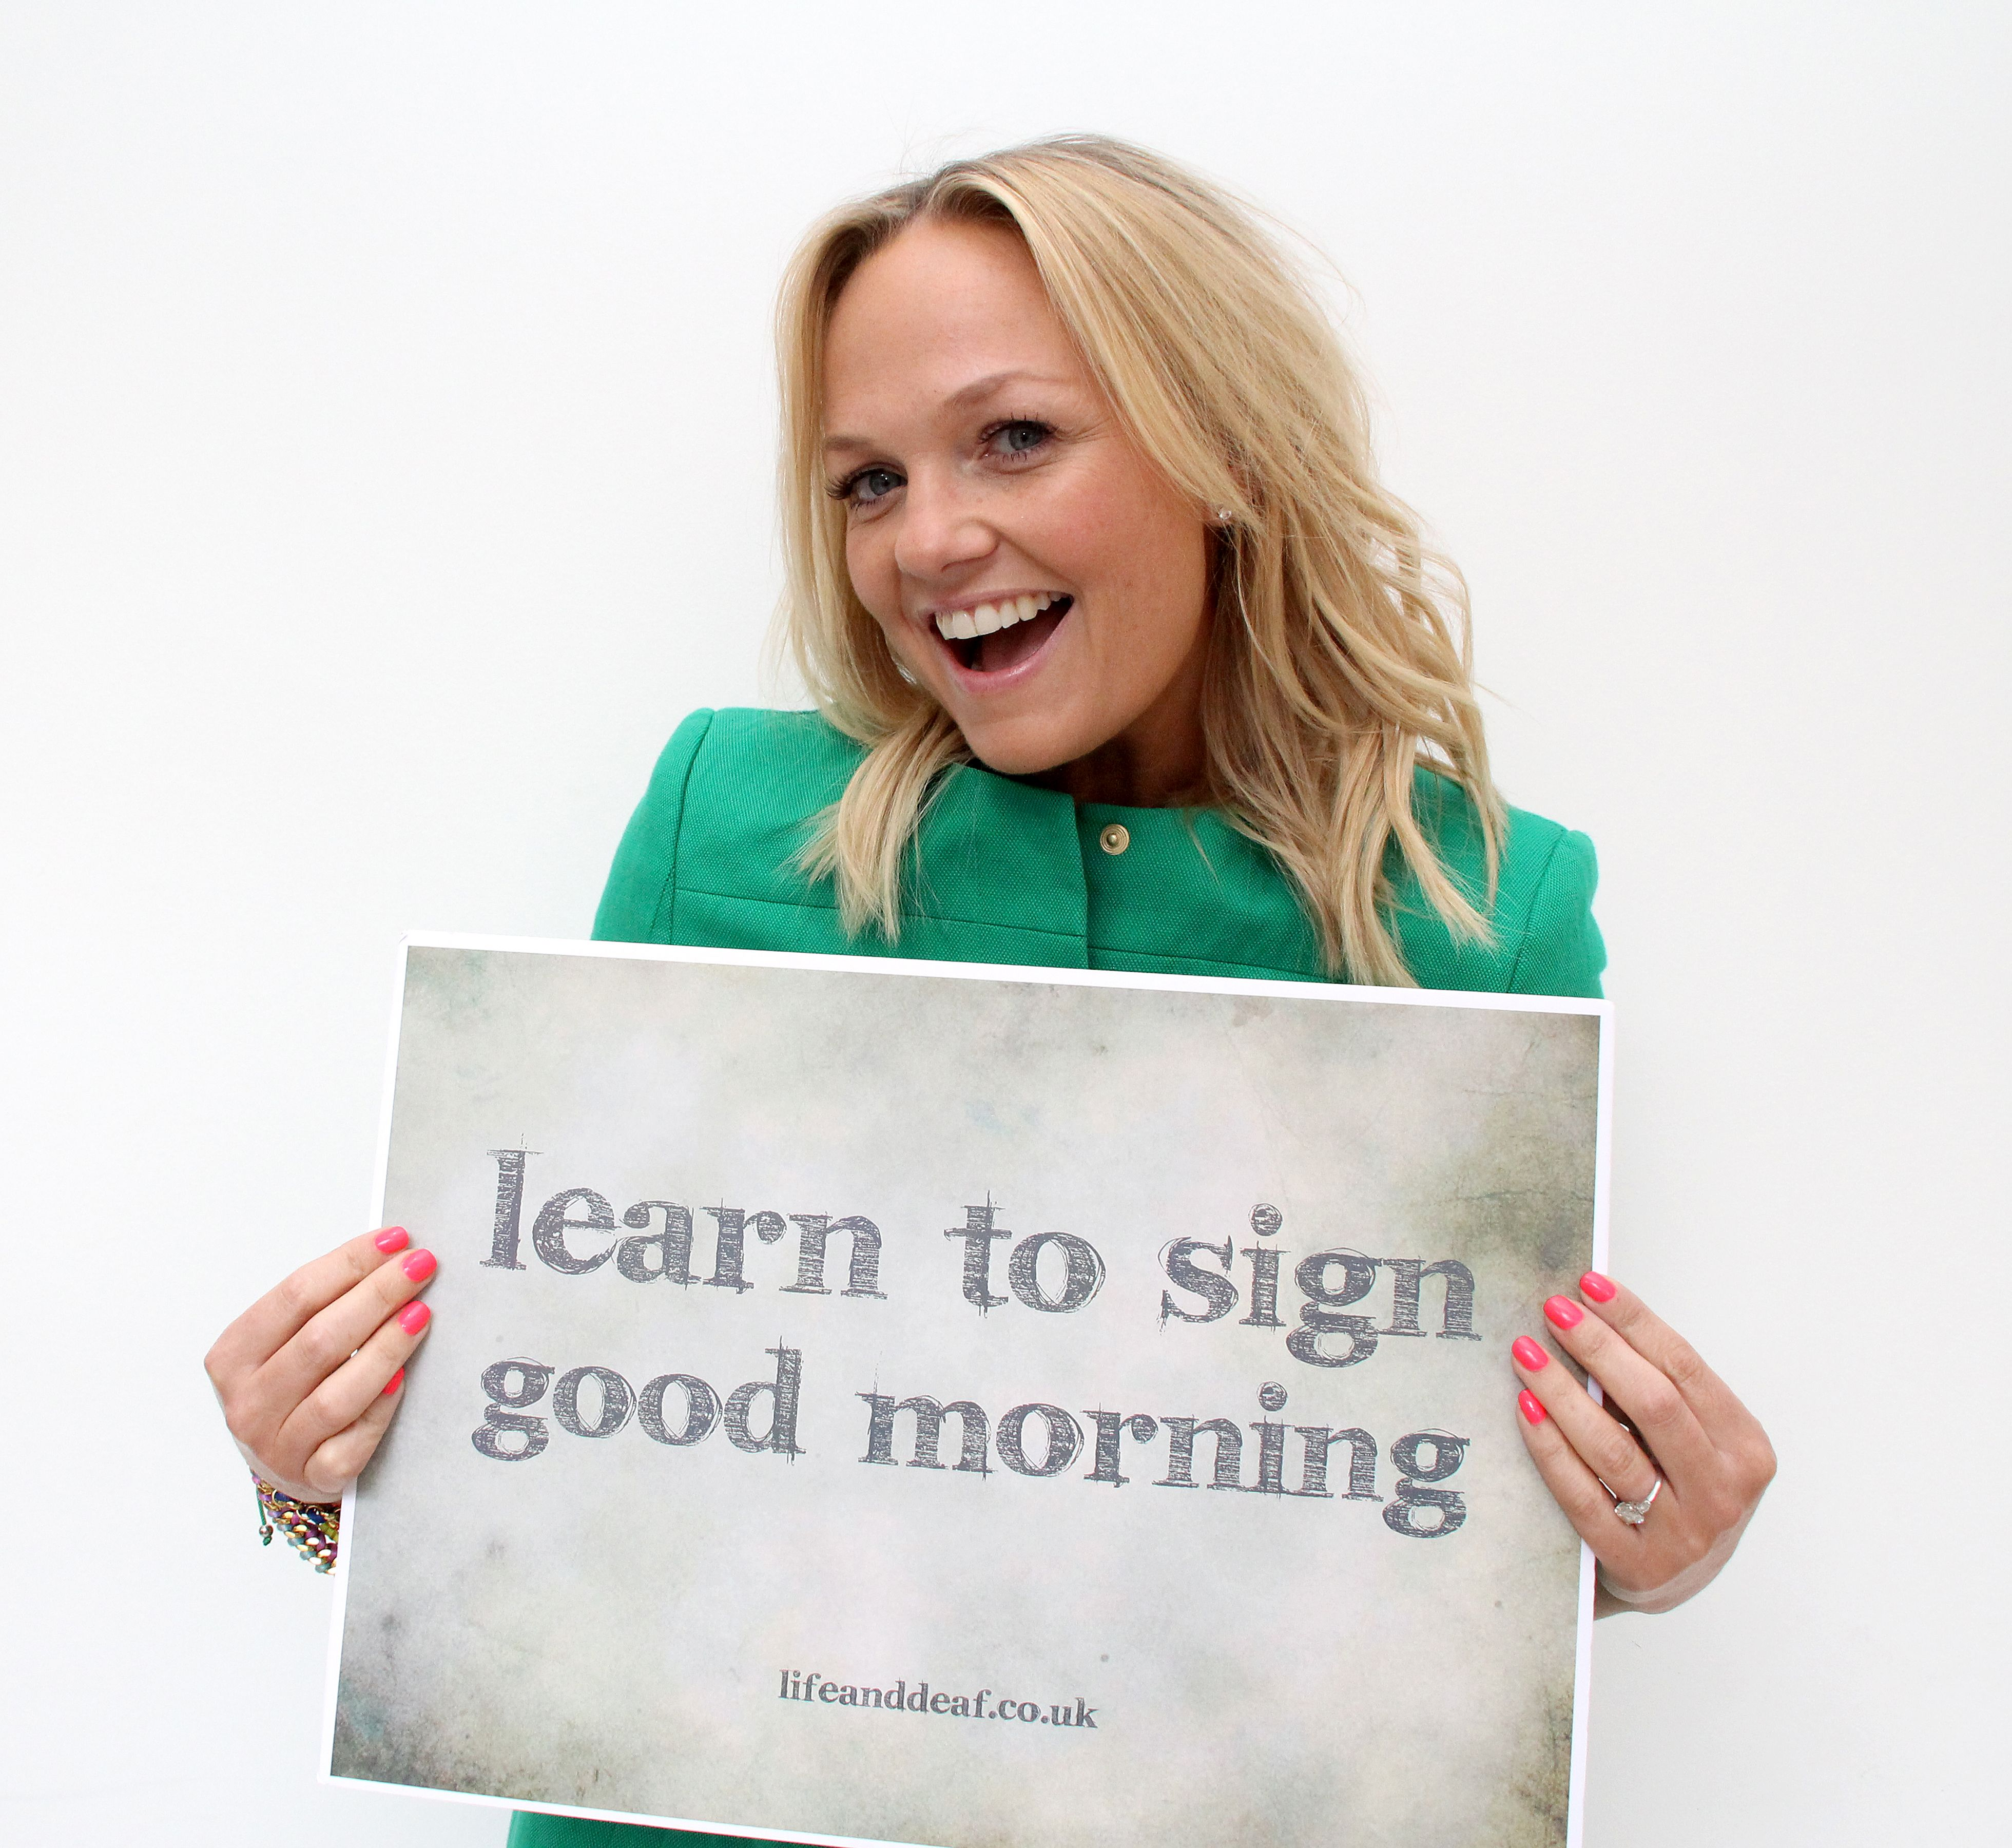 how to say good morning in sign language